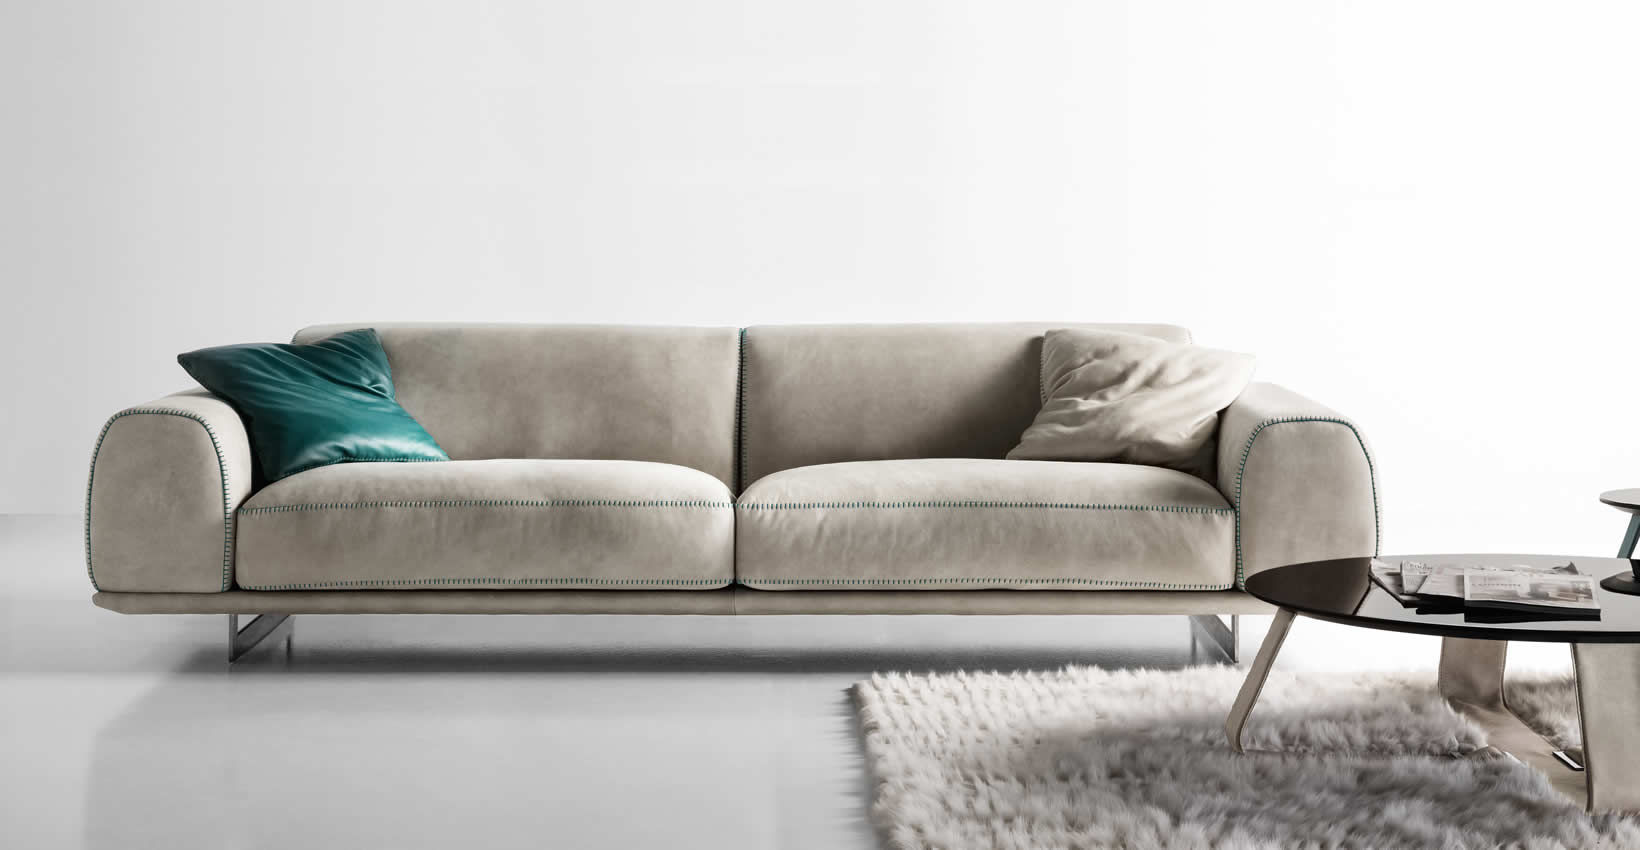 Superieur ... Modular Sofa / Contemporary / Leather / 3 Seater ...